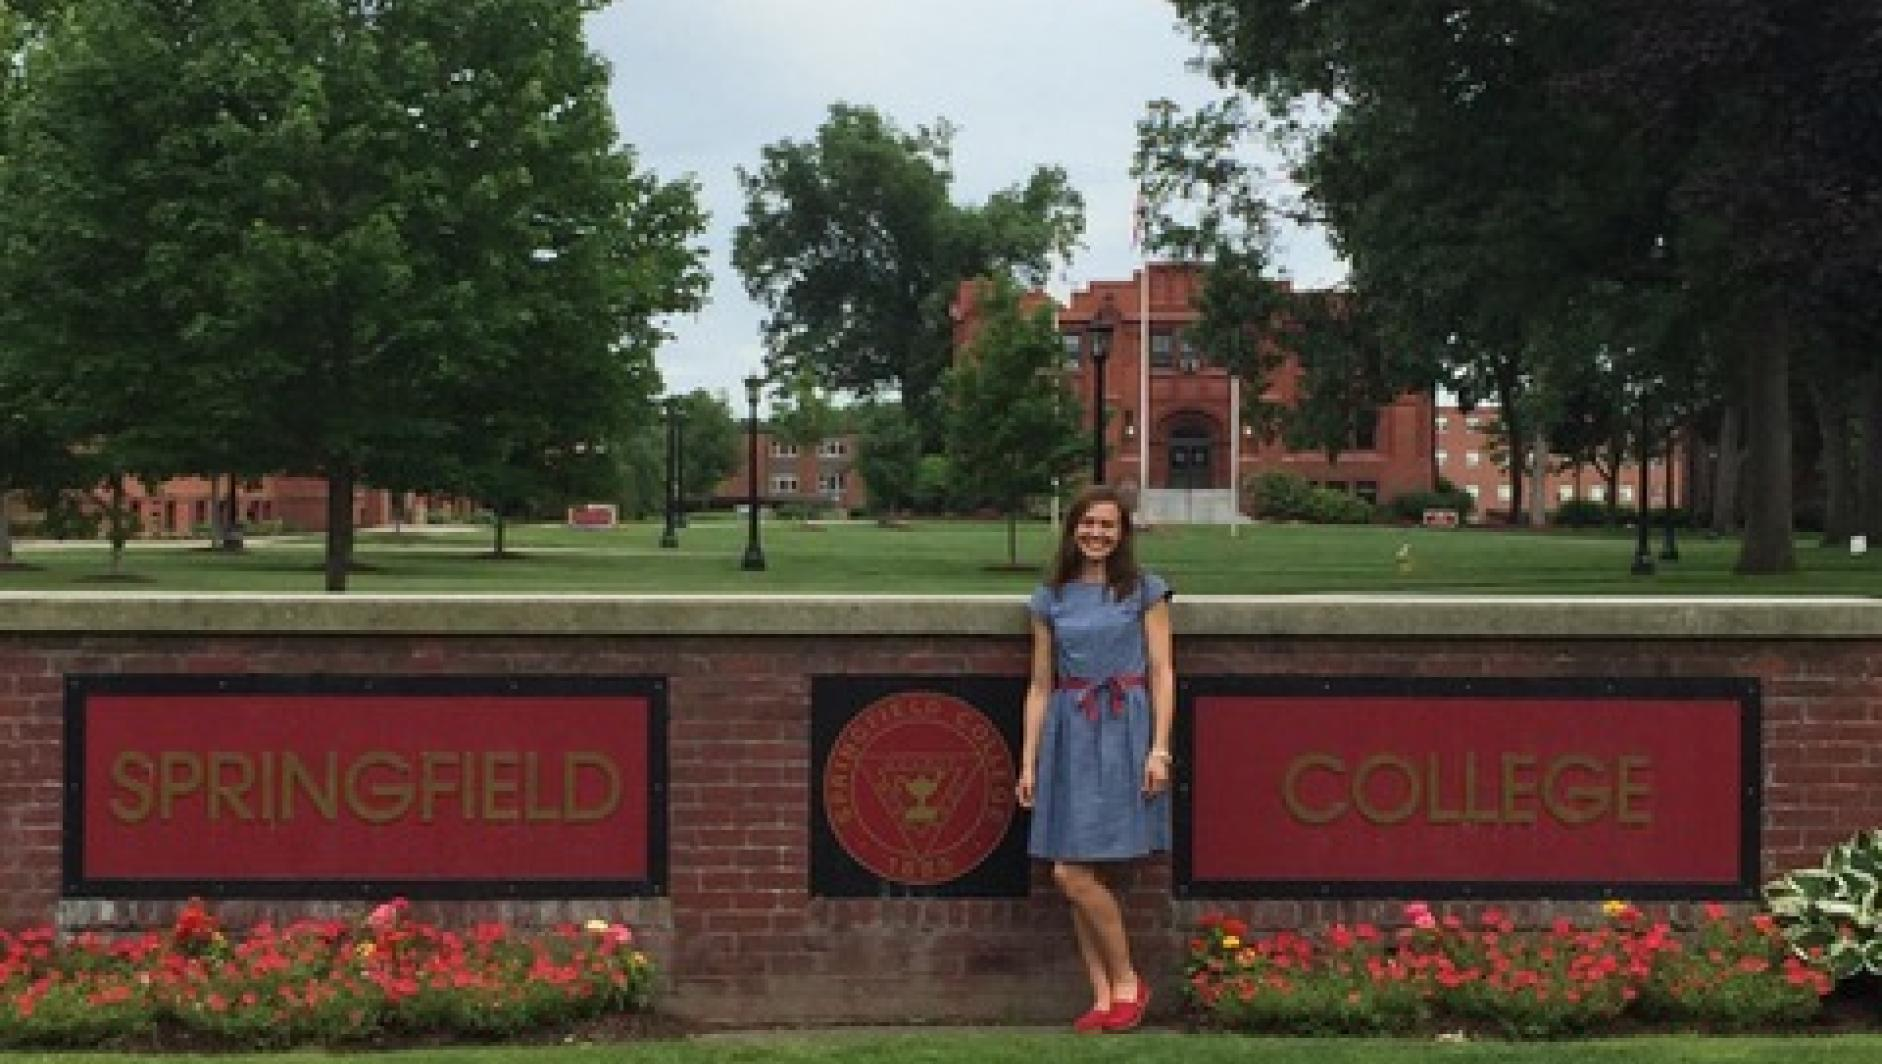 Watkins in front of the Springfield College sign.